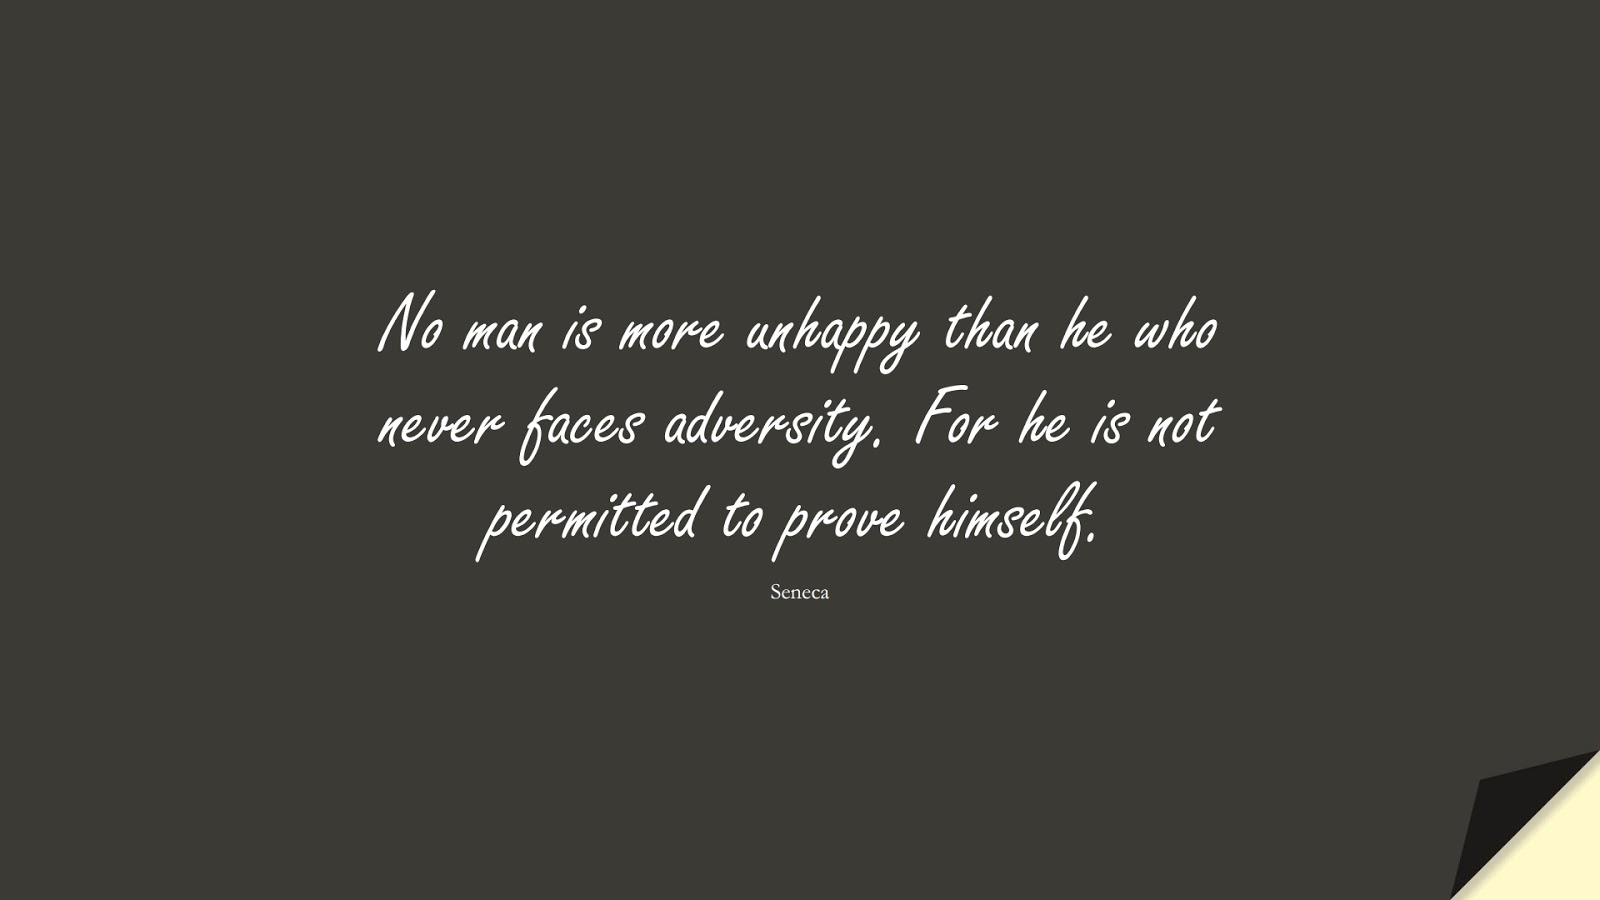 No man is more unhappy than he who never faces adversity. For he is not permitted to prove himself. (Seneca);  #NeverGiveUpQuotes